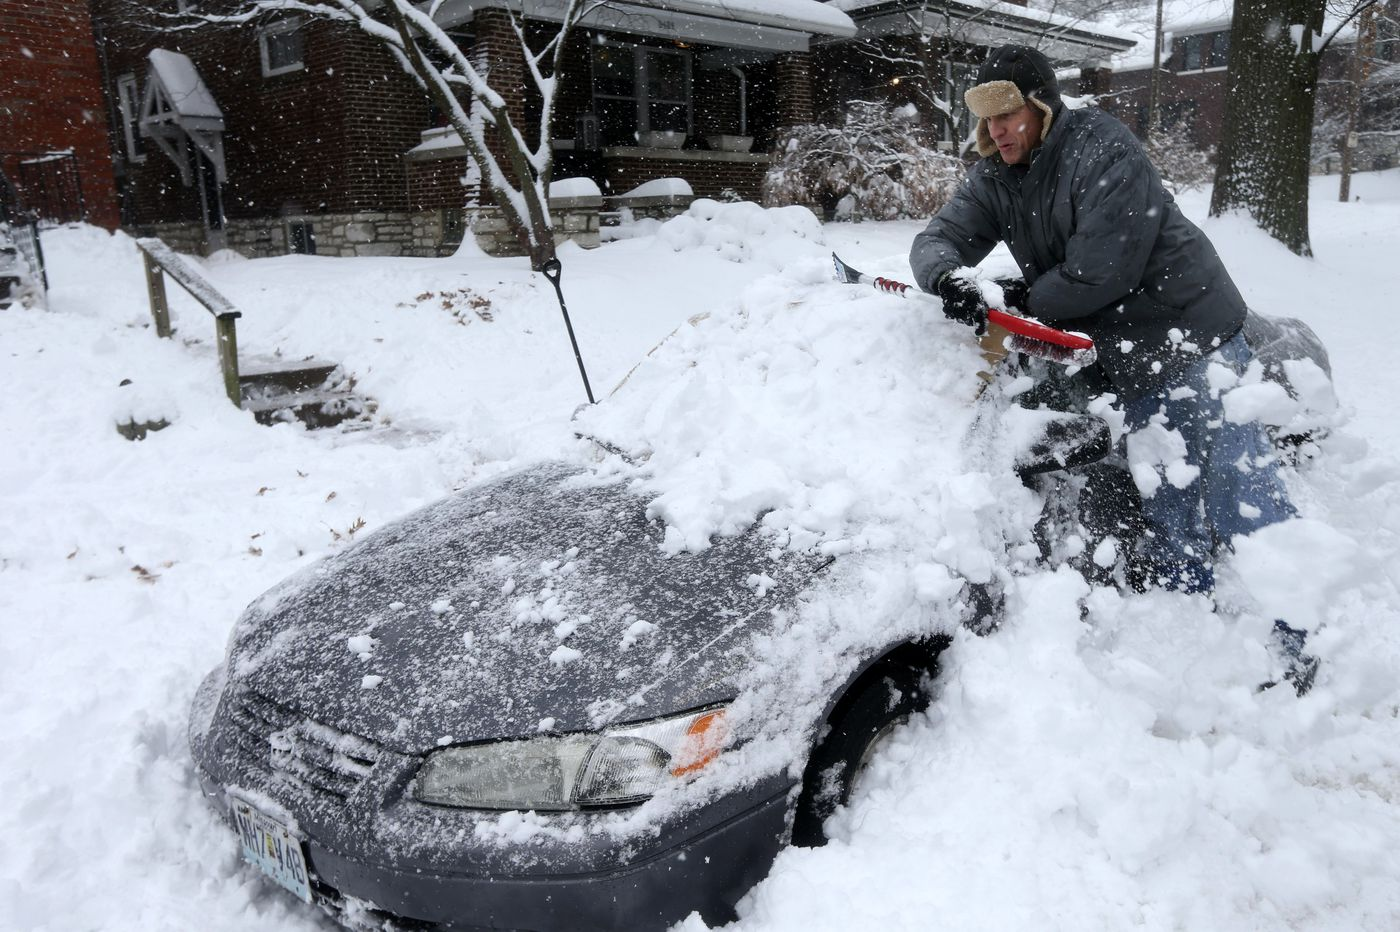 Winter storm in Midwest sees 5 road deaths, power outages